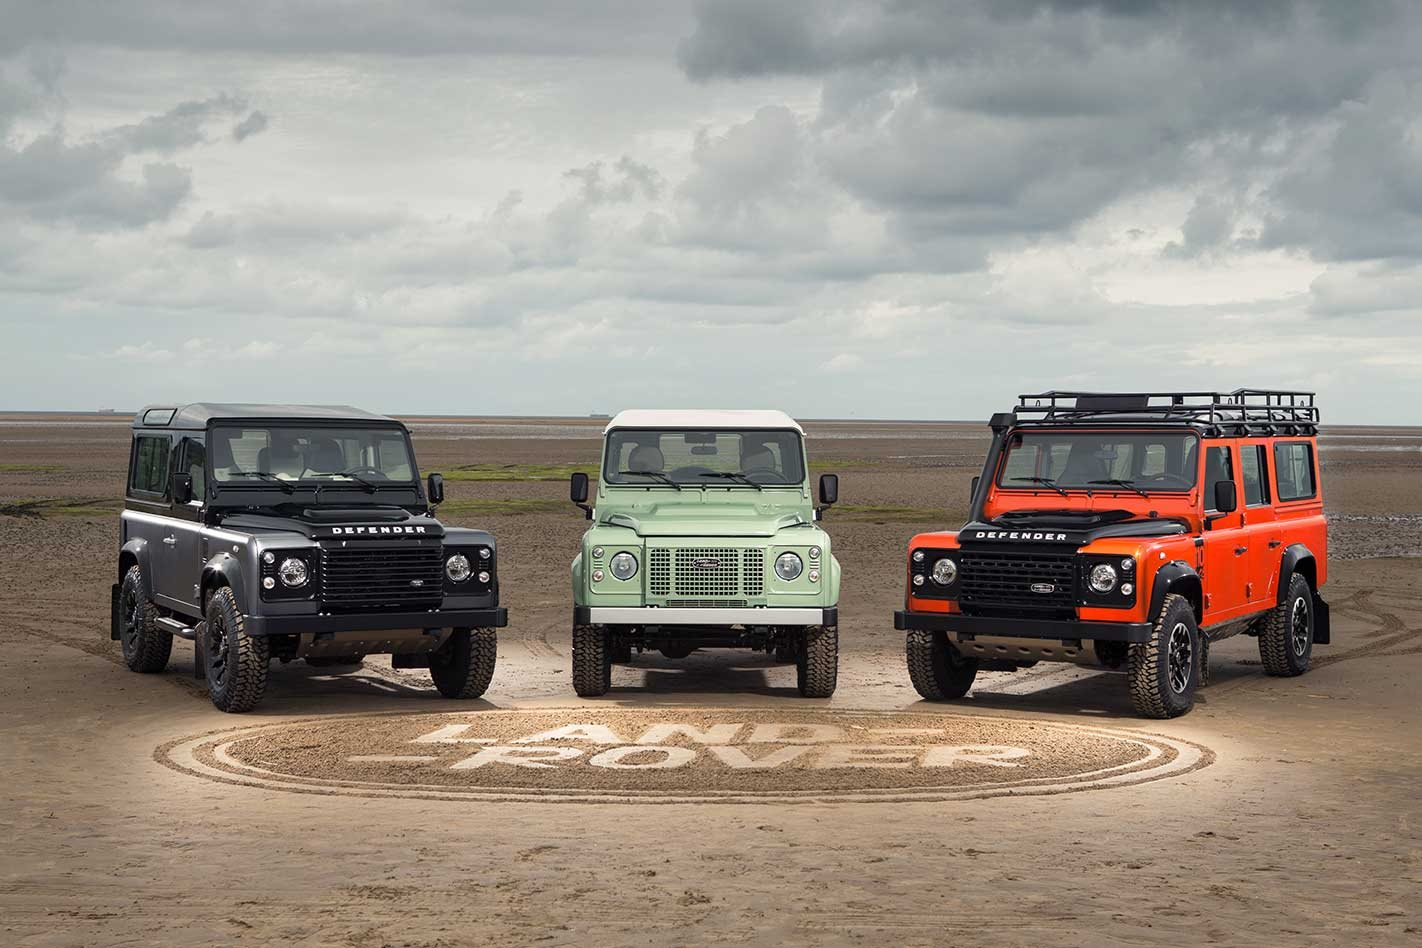 4x4 History: Land Rover Defender 1983 - 2016